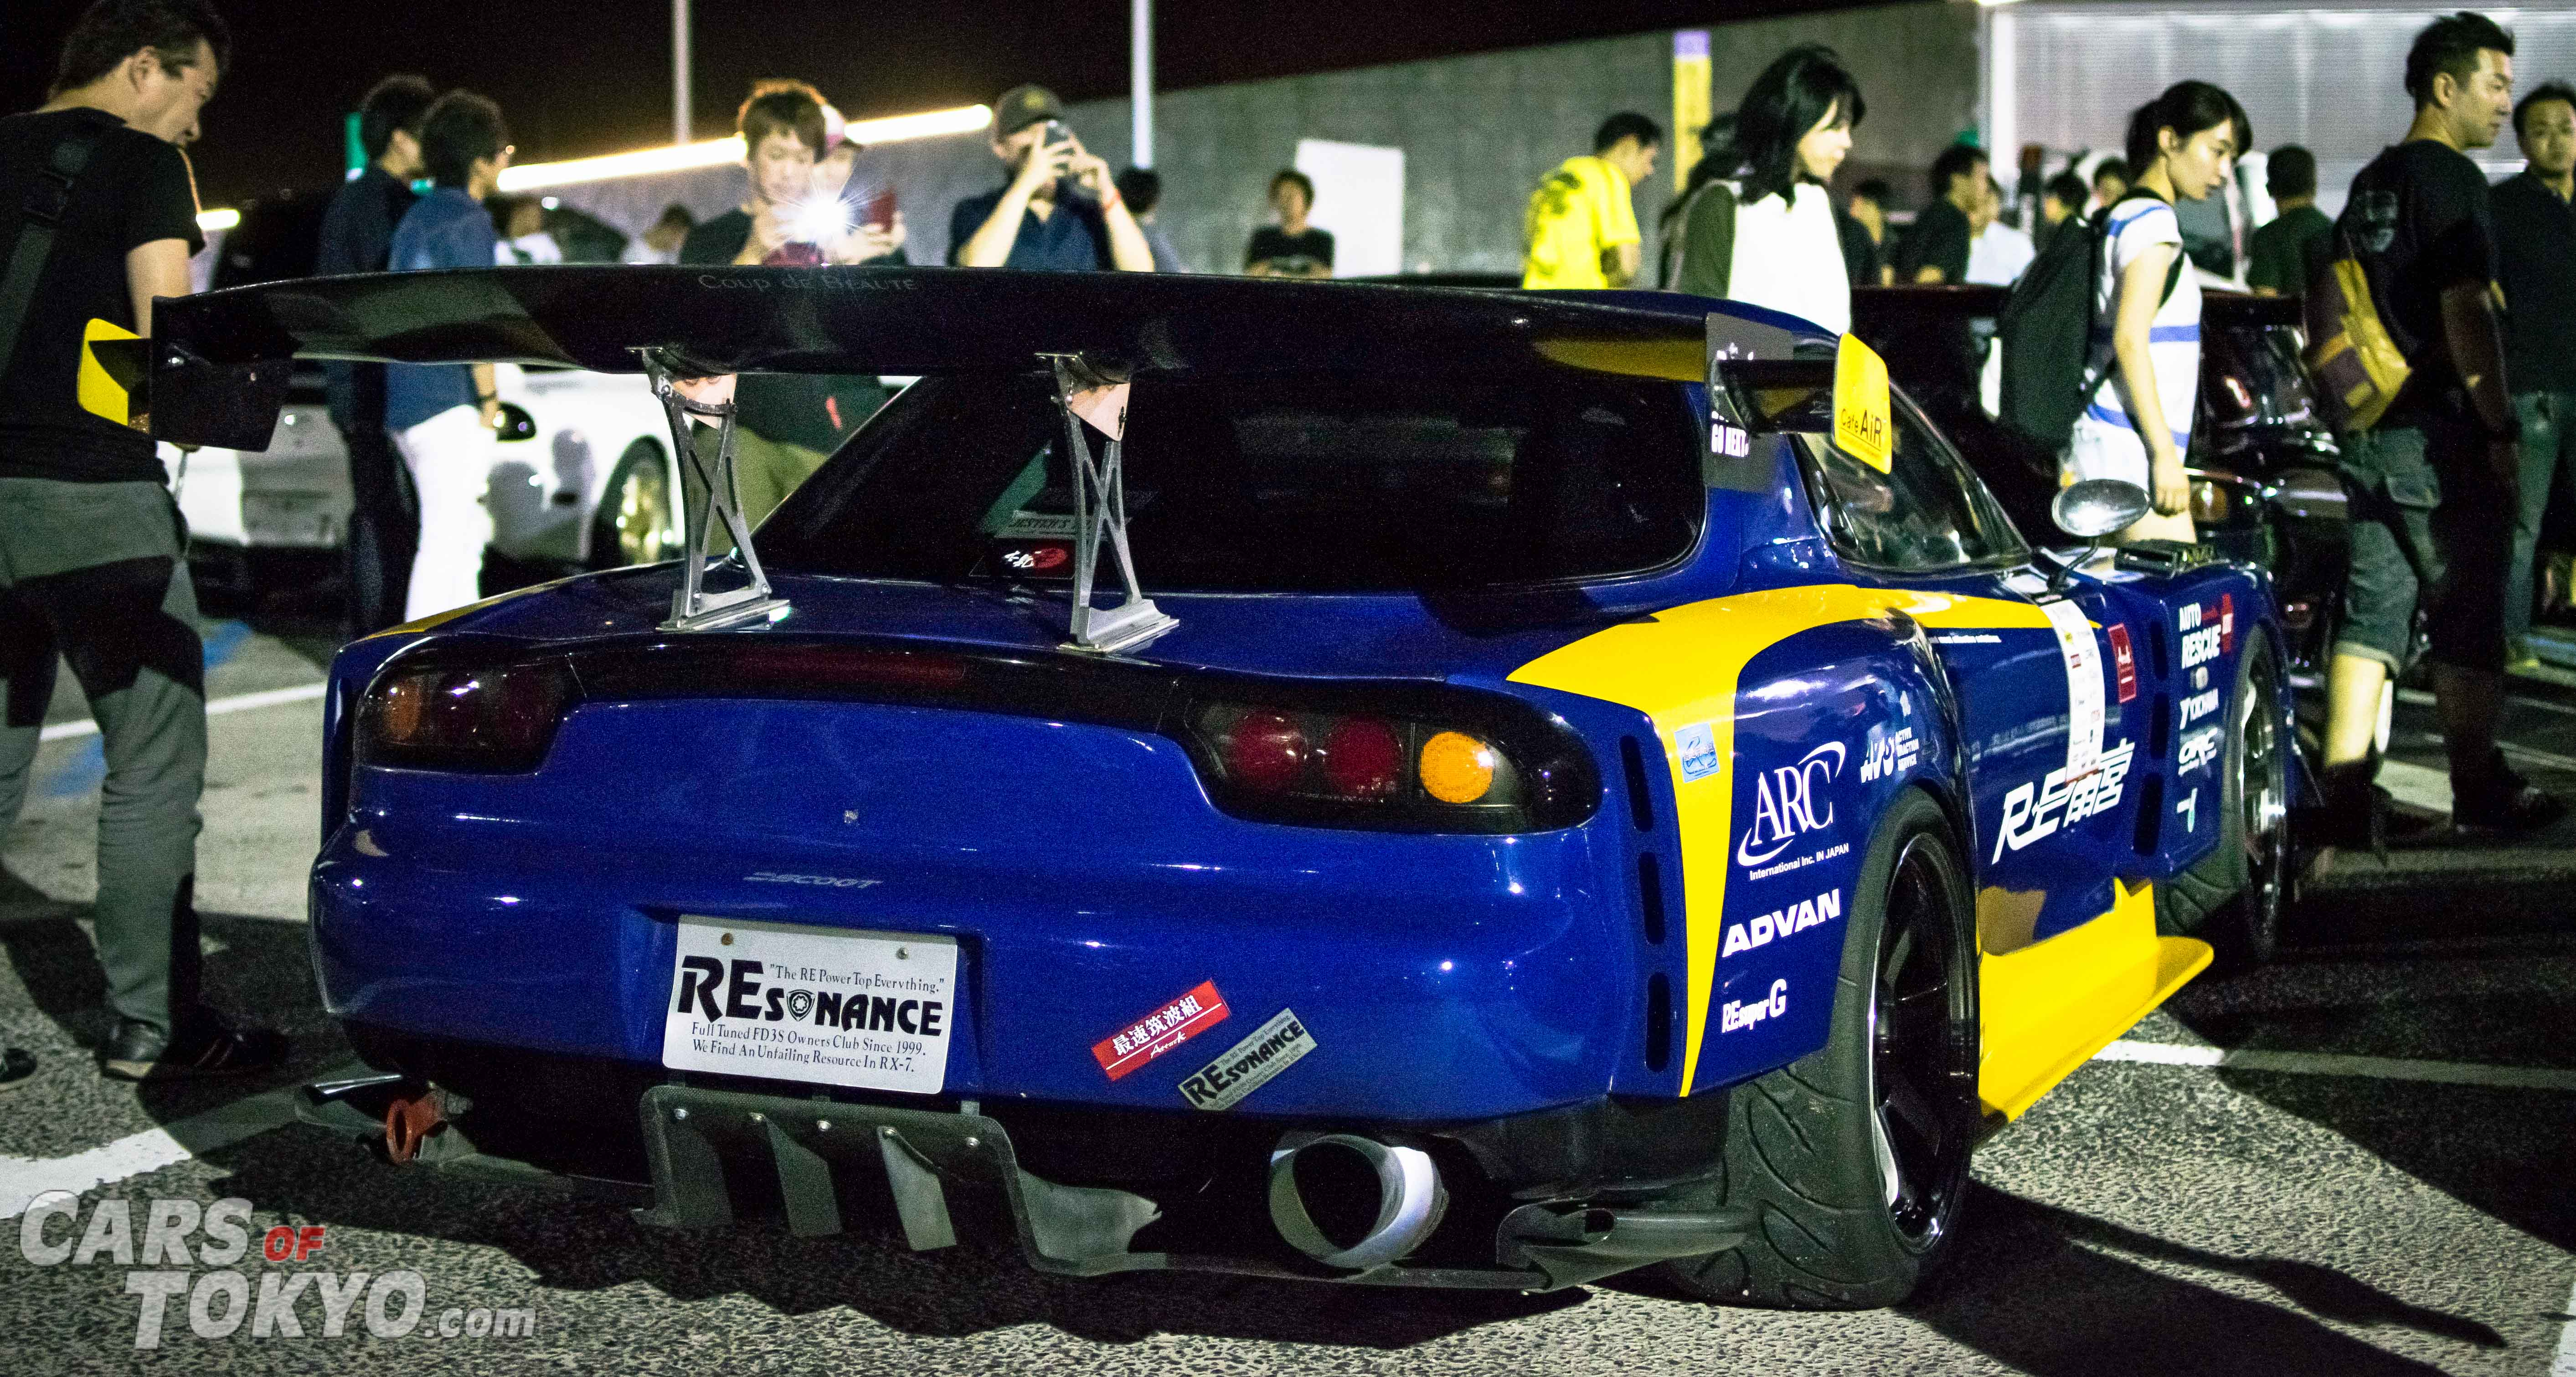 20 Awesome Rx 7s From The 7 7 Meet Cars Of Tokyo